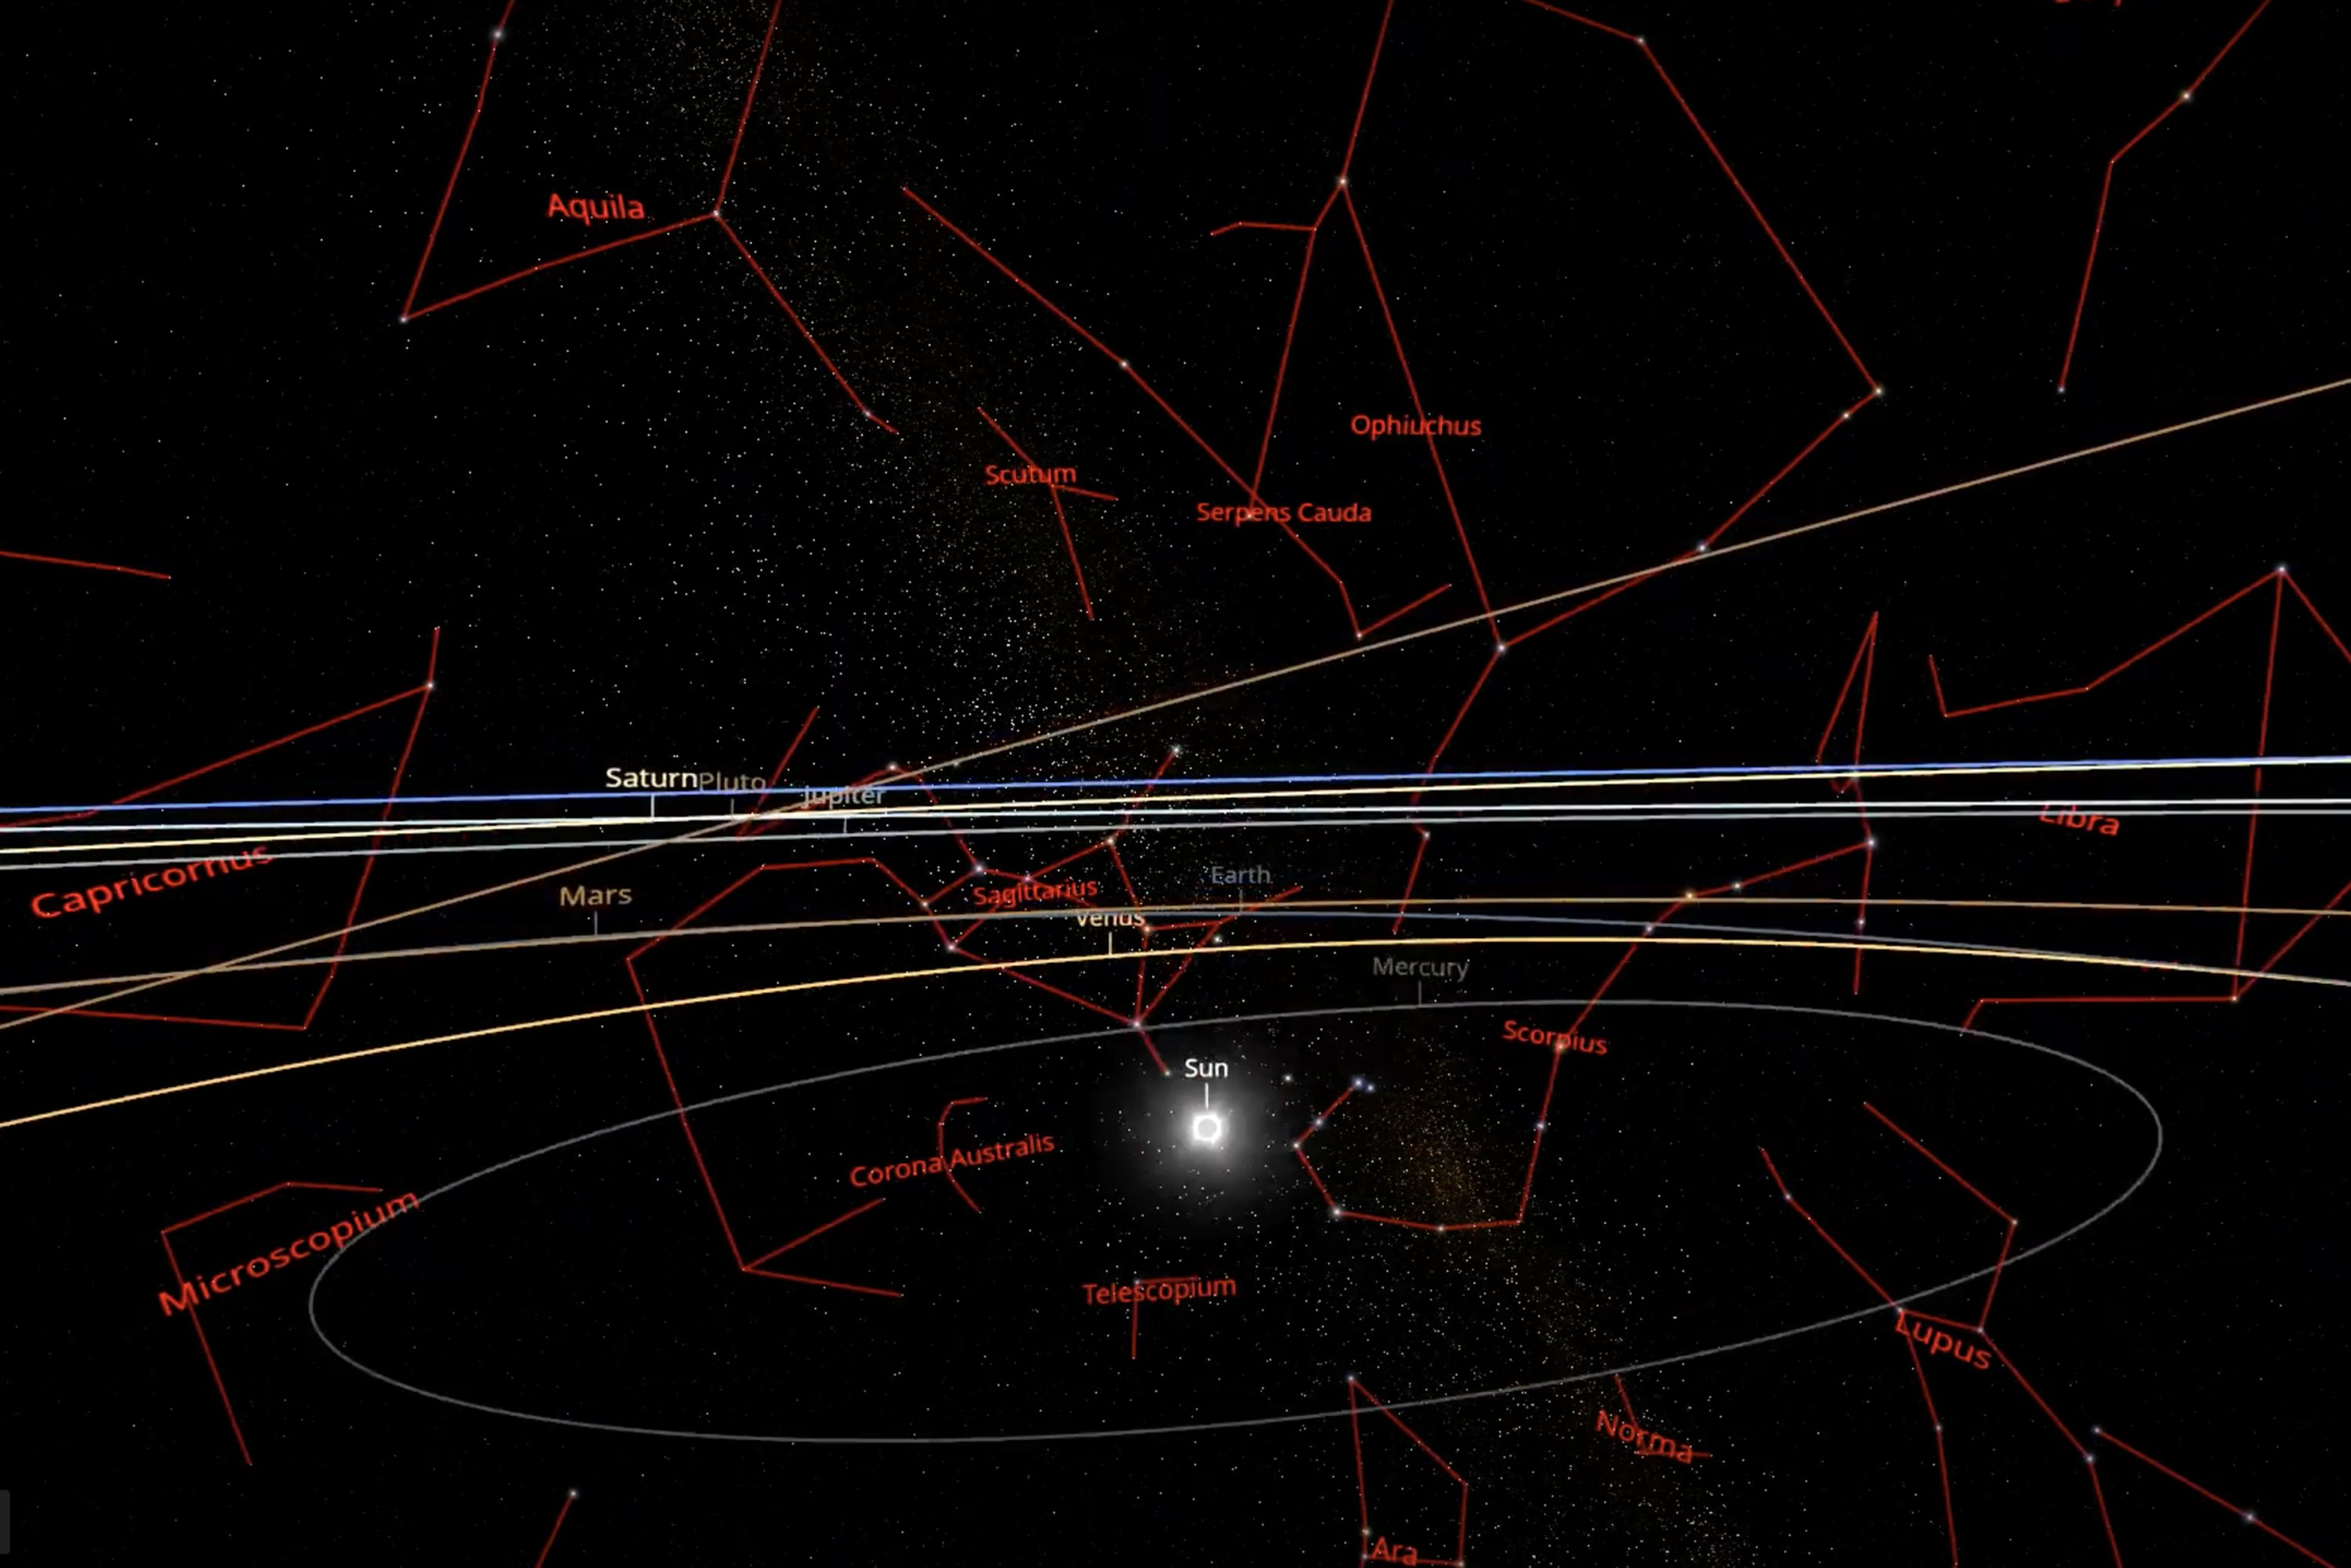 An image grab from a handout computer animation made available on July 19, 2020, by the Swiss Federal Institute of Technology Lausanne (EPFL) shows the Solar System, with stellar constellations. (Photo by Handout / Swiss Federal Institute of Technology Lausanne / AFP)